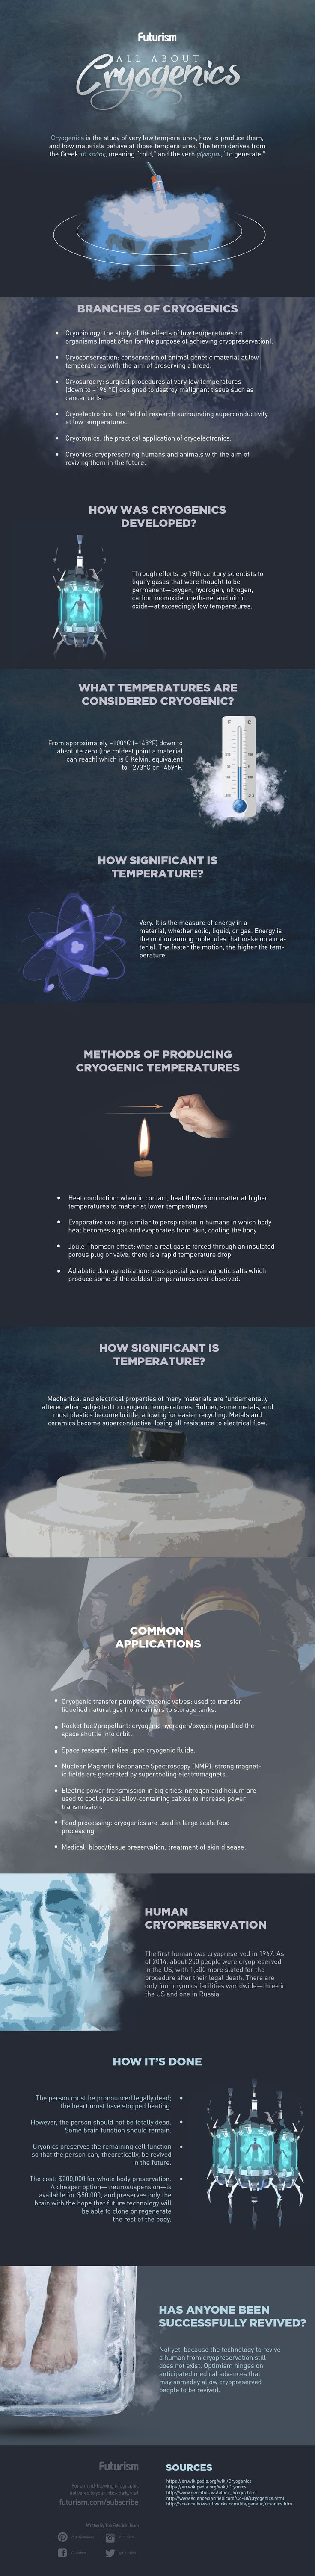 Just about everything you want to know about cryogenics. http://futurism.com/images/all-about-cryogenics-infographic/?utm_campaign=coschedule&utm_source=pinterest&utm_medium=Futurism&utm_content=All%20About%20Cryogenics%20%5BINFOGRAPHIC%5D